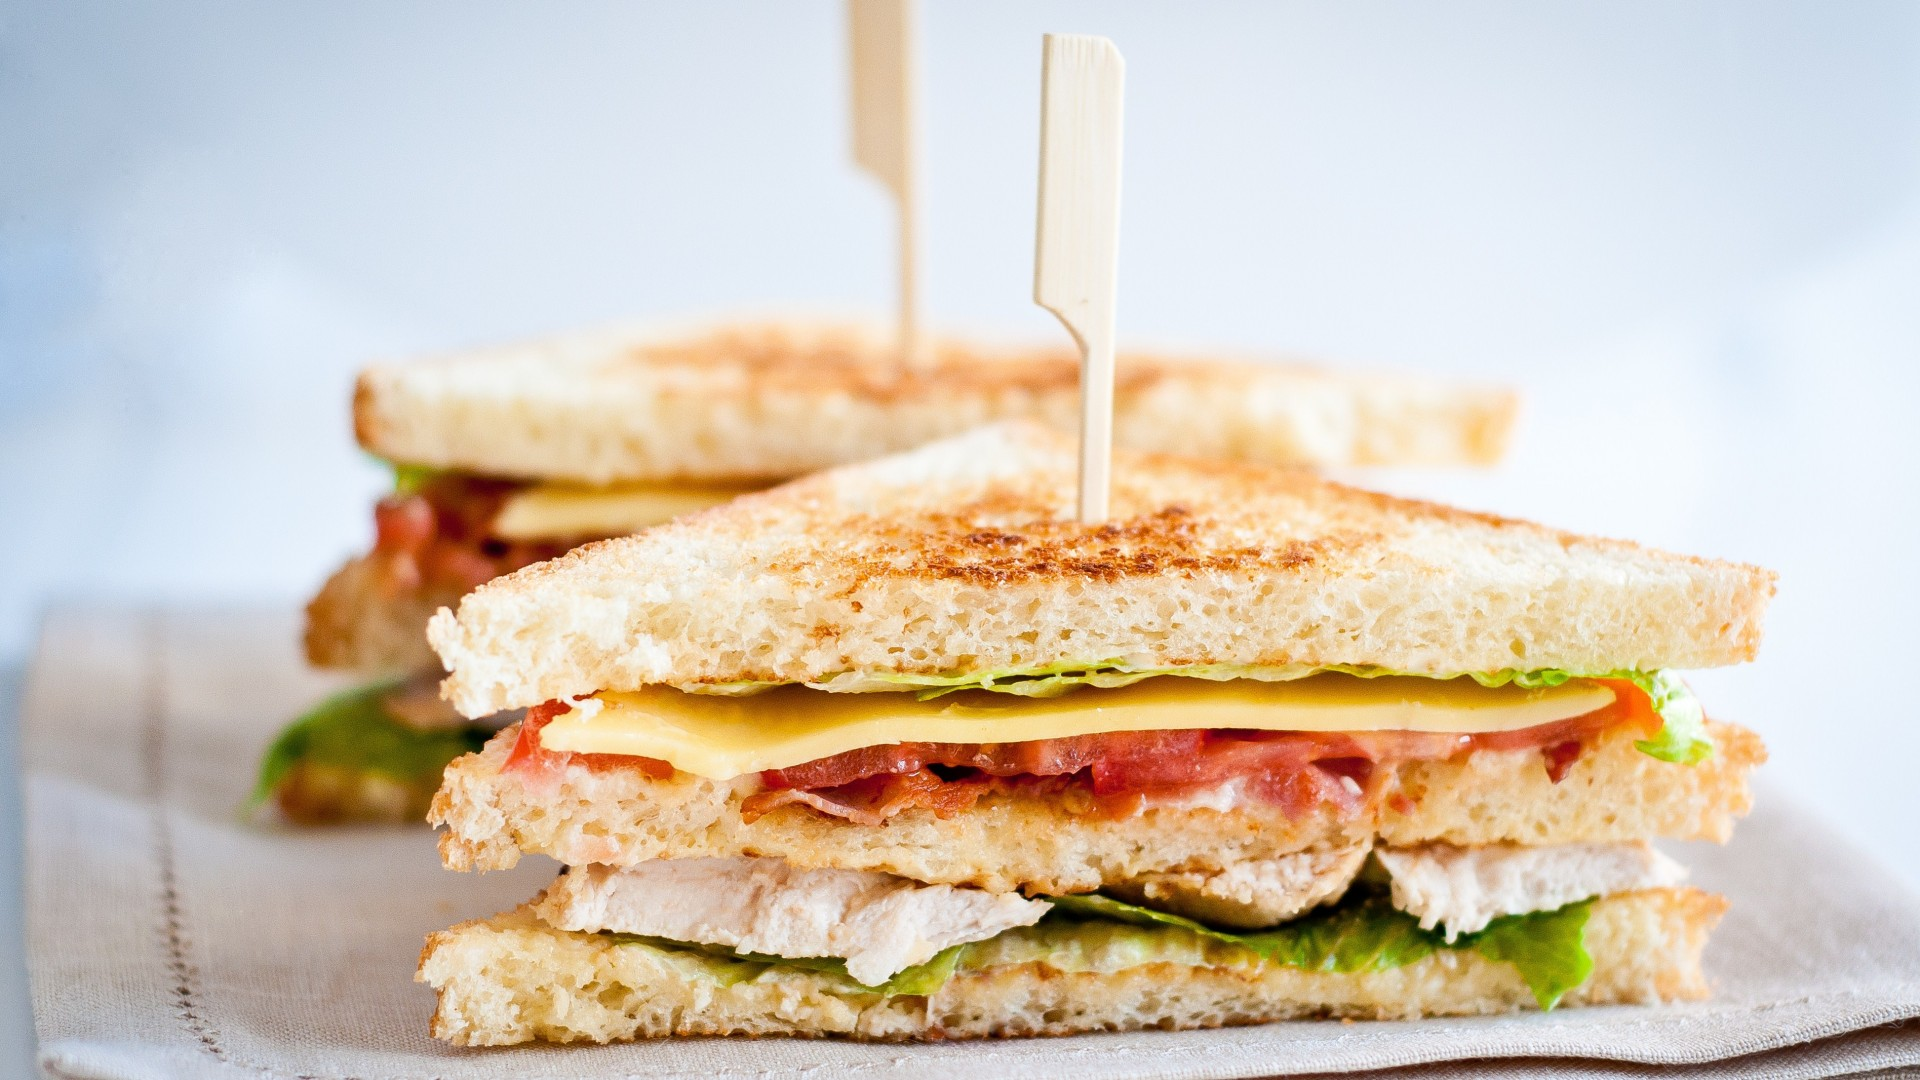 sandwich, cheese, bacon, chicken, lettuce, tomato (horizontal)